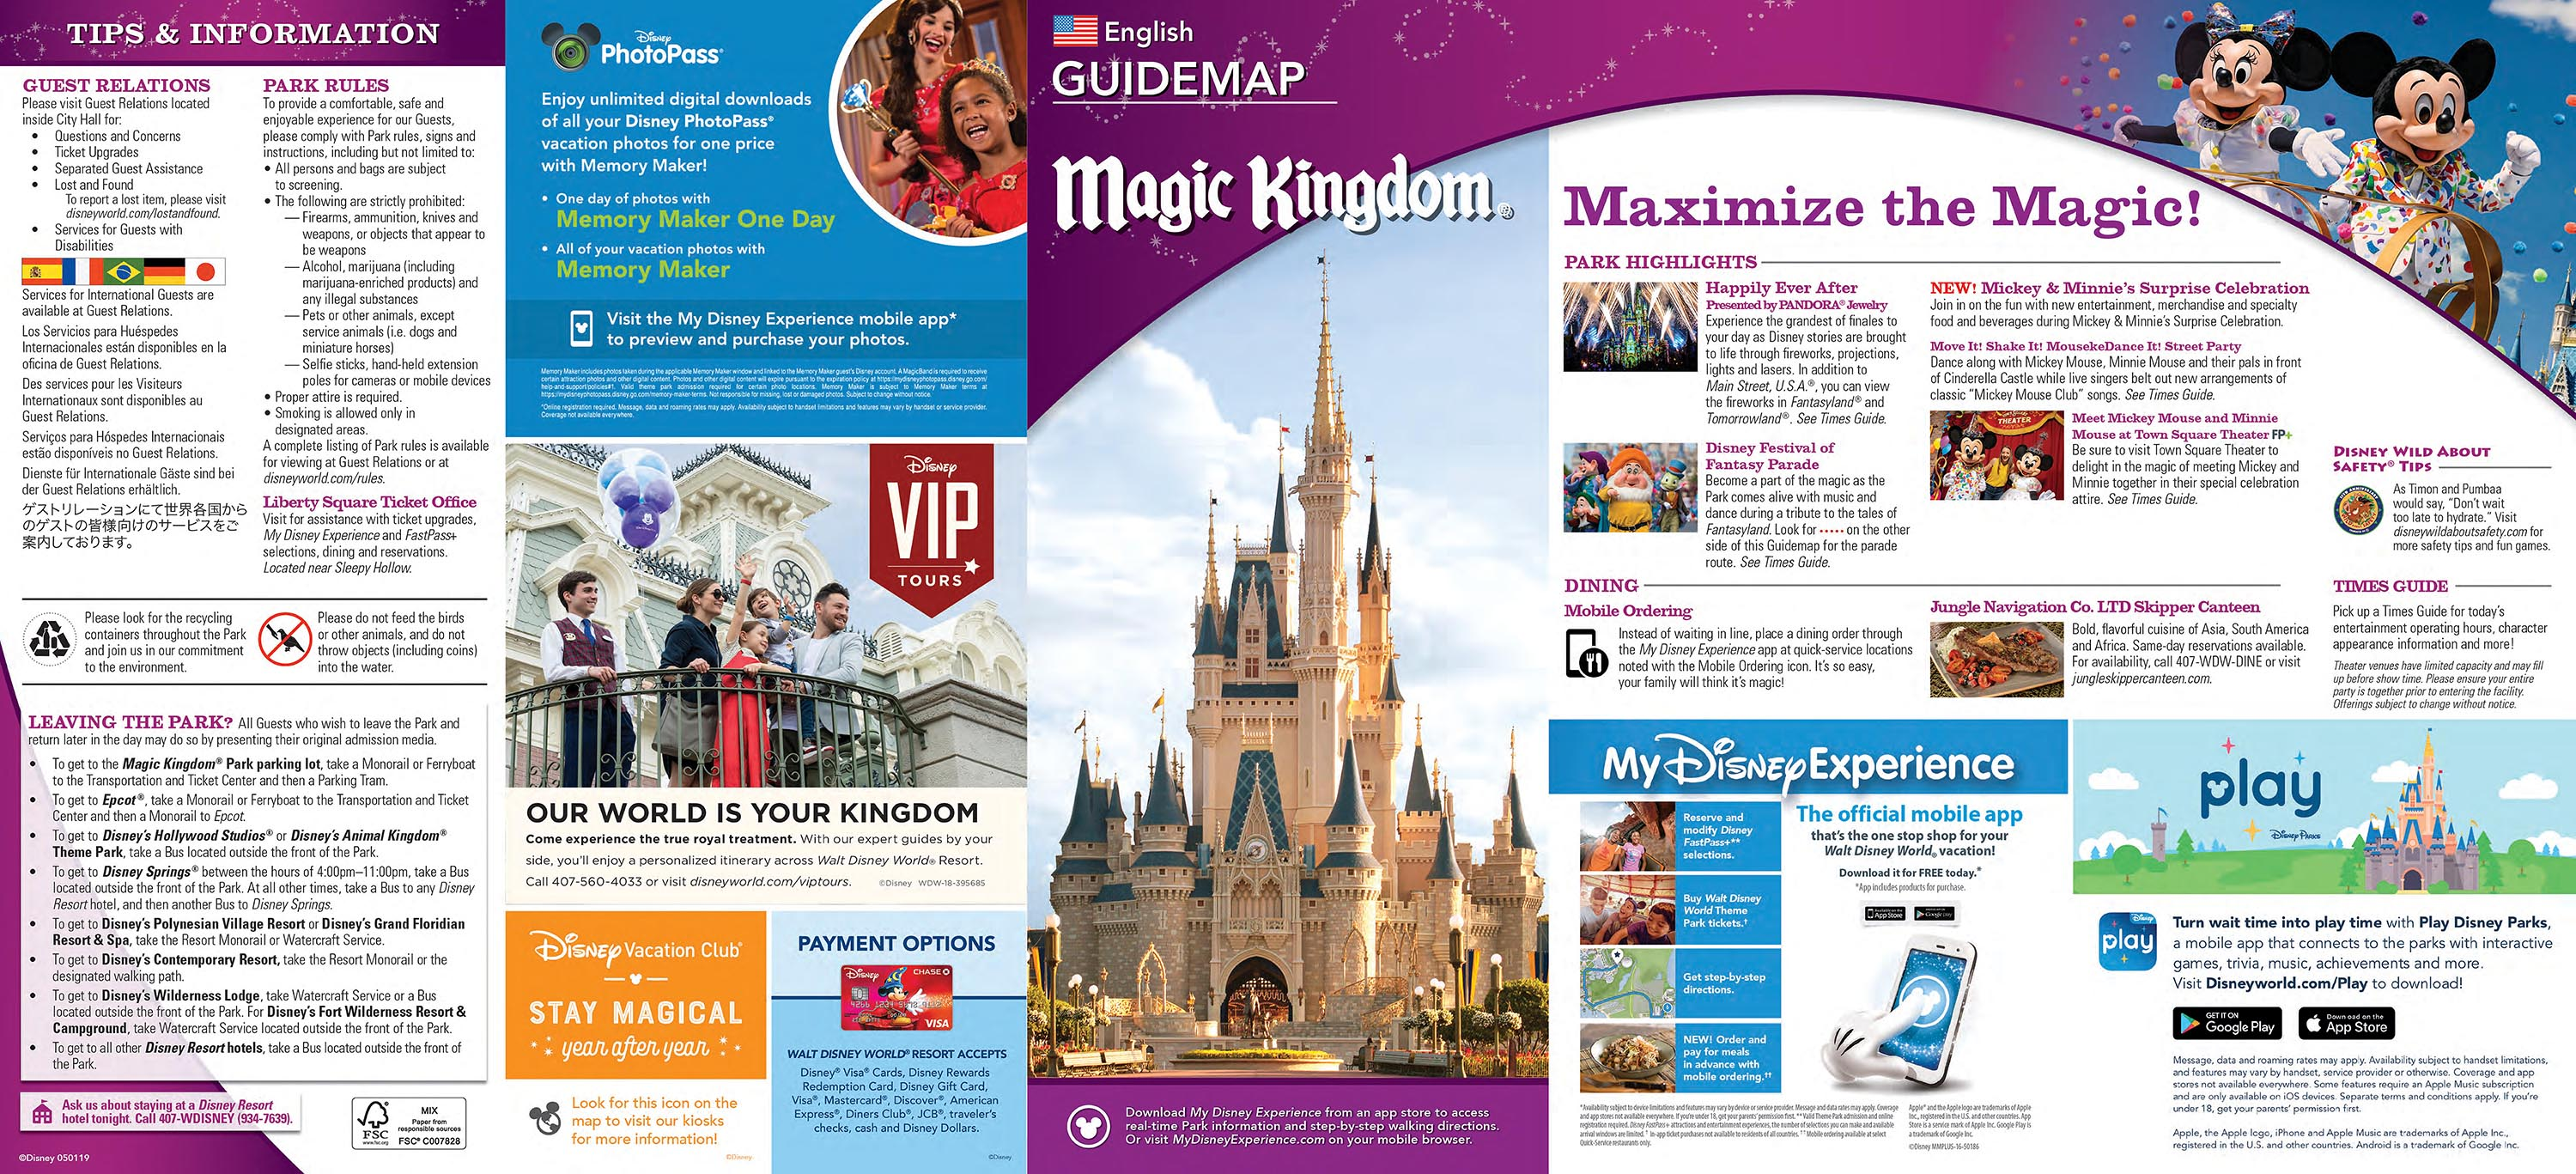 Walt Disney World Park Guide Maps on walt disney world resort, disneyland park map, universal map, disney map, space mountain, haunted mansion, big thunder mountain railroad, tokyo disneysea map, hong kong disneyland map, tokyo disneyland map, sleeping beauty map, hong kong disneyland, animal kingdom map, polynesian resort map, pirates of the caribbean, tokyo disneyland, islands of adventure, cinderella castle, florida map, epcot center map, disneyland paris map, splash mountain, downtown disney, universal studios florida, seaworld orlando, typhoon lagoon map, adventureland map, kingdom keepers map, new fantasyland map, main street map, tomorrowland map, orlando map, busch gardens map,